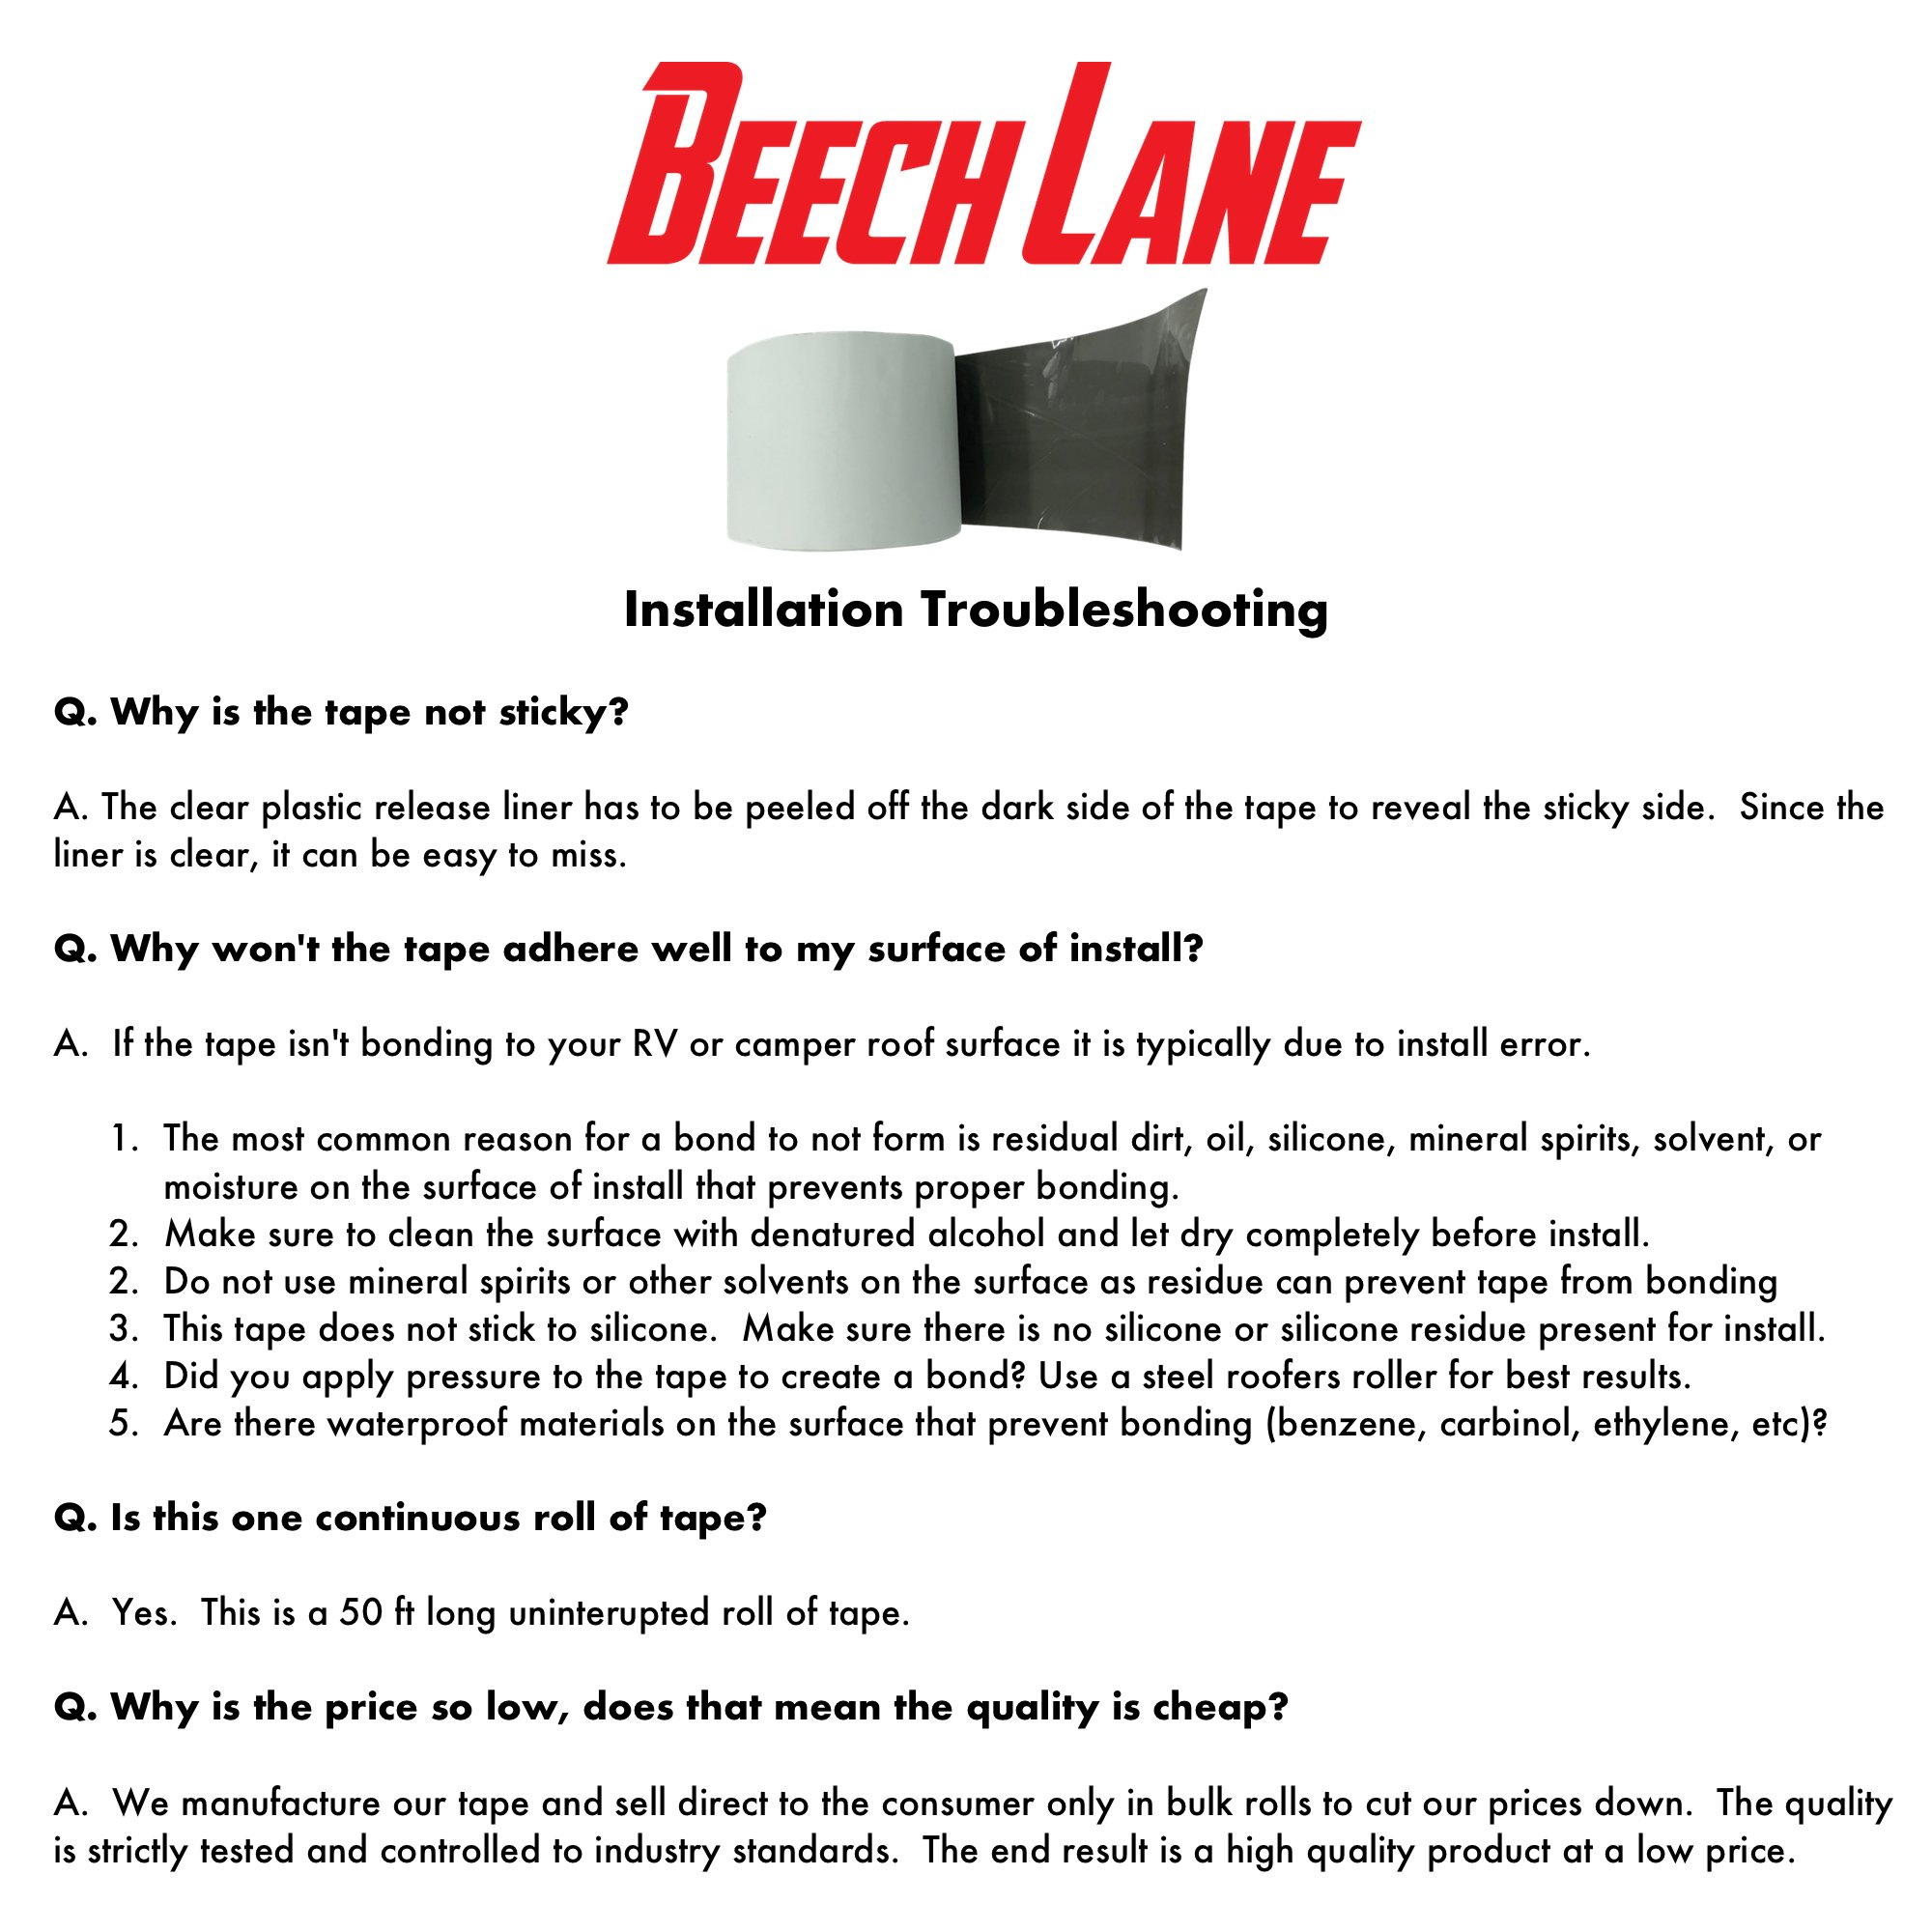 Beech Lane RV White Roof Sealant Tape 4'' x 50', Permanently Stops Camper  Roof Leaks, Installation, UV and Weatherproof Sealant